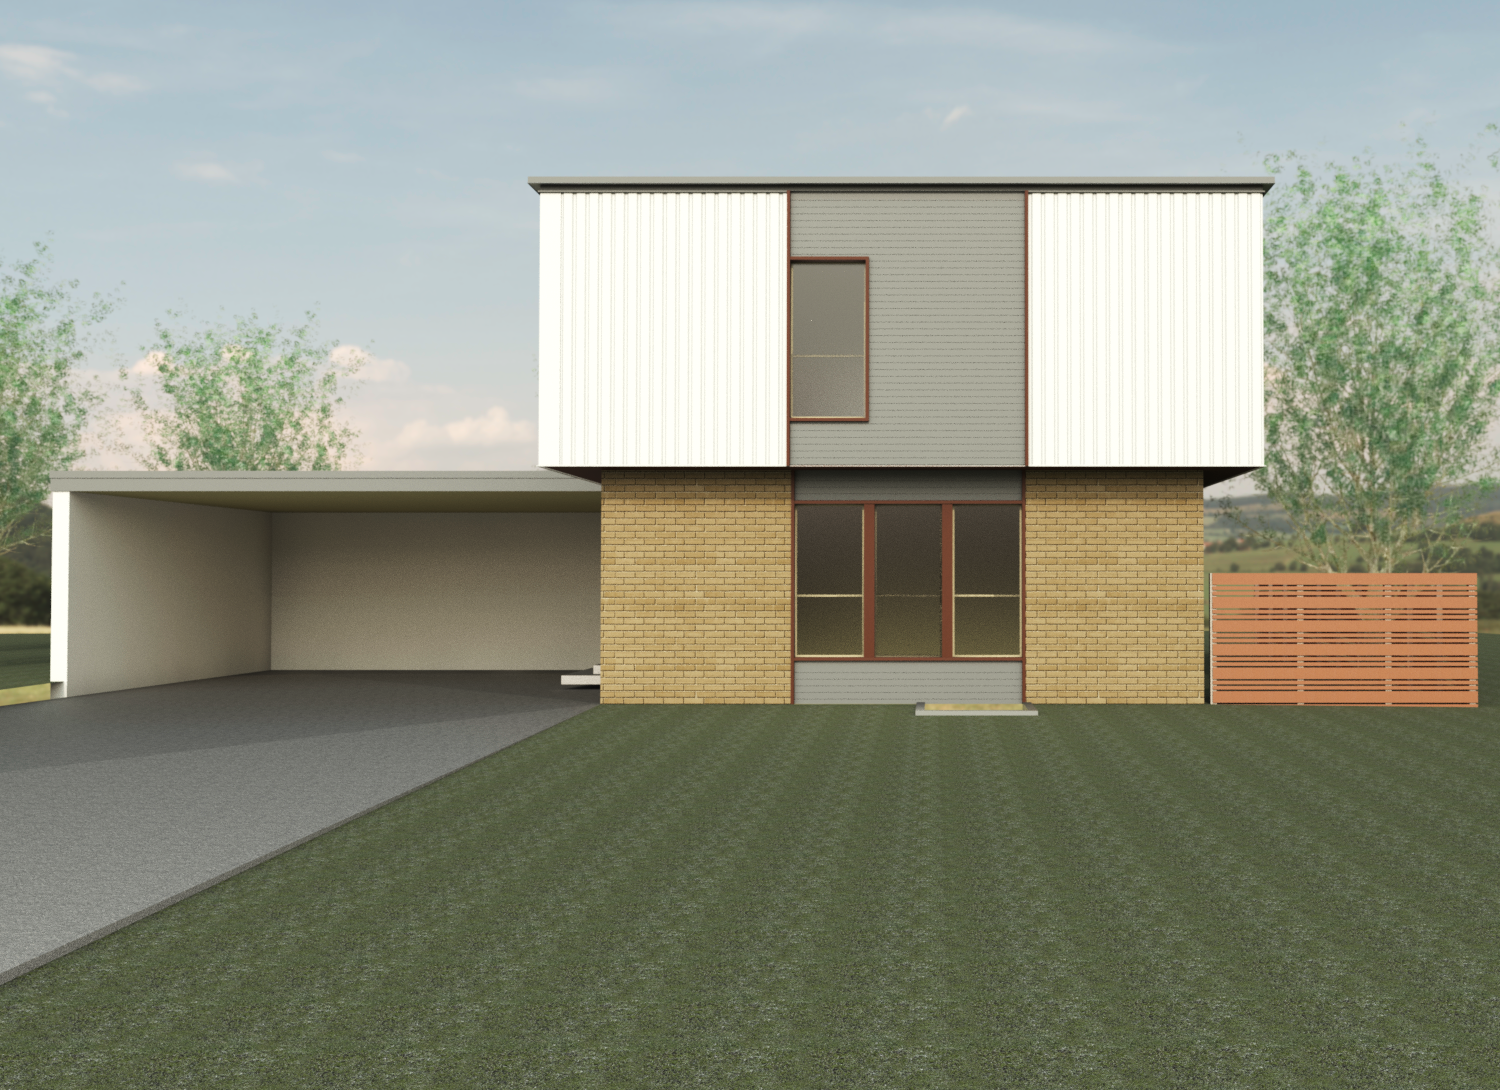 06 Martins_Residence_3D_View_-_front_from_street_-_straight_on_-_gray_insert_-_white_sides.png